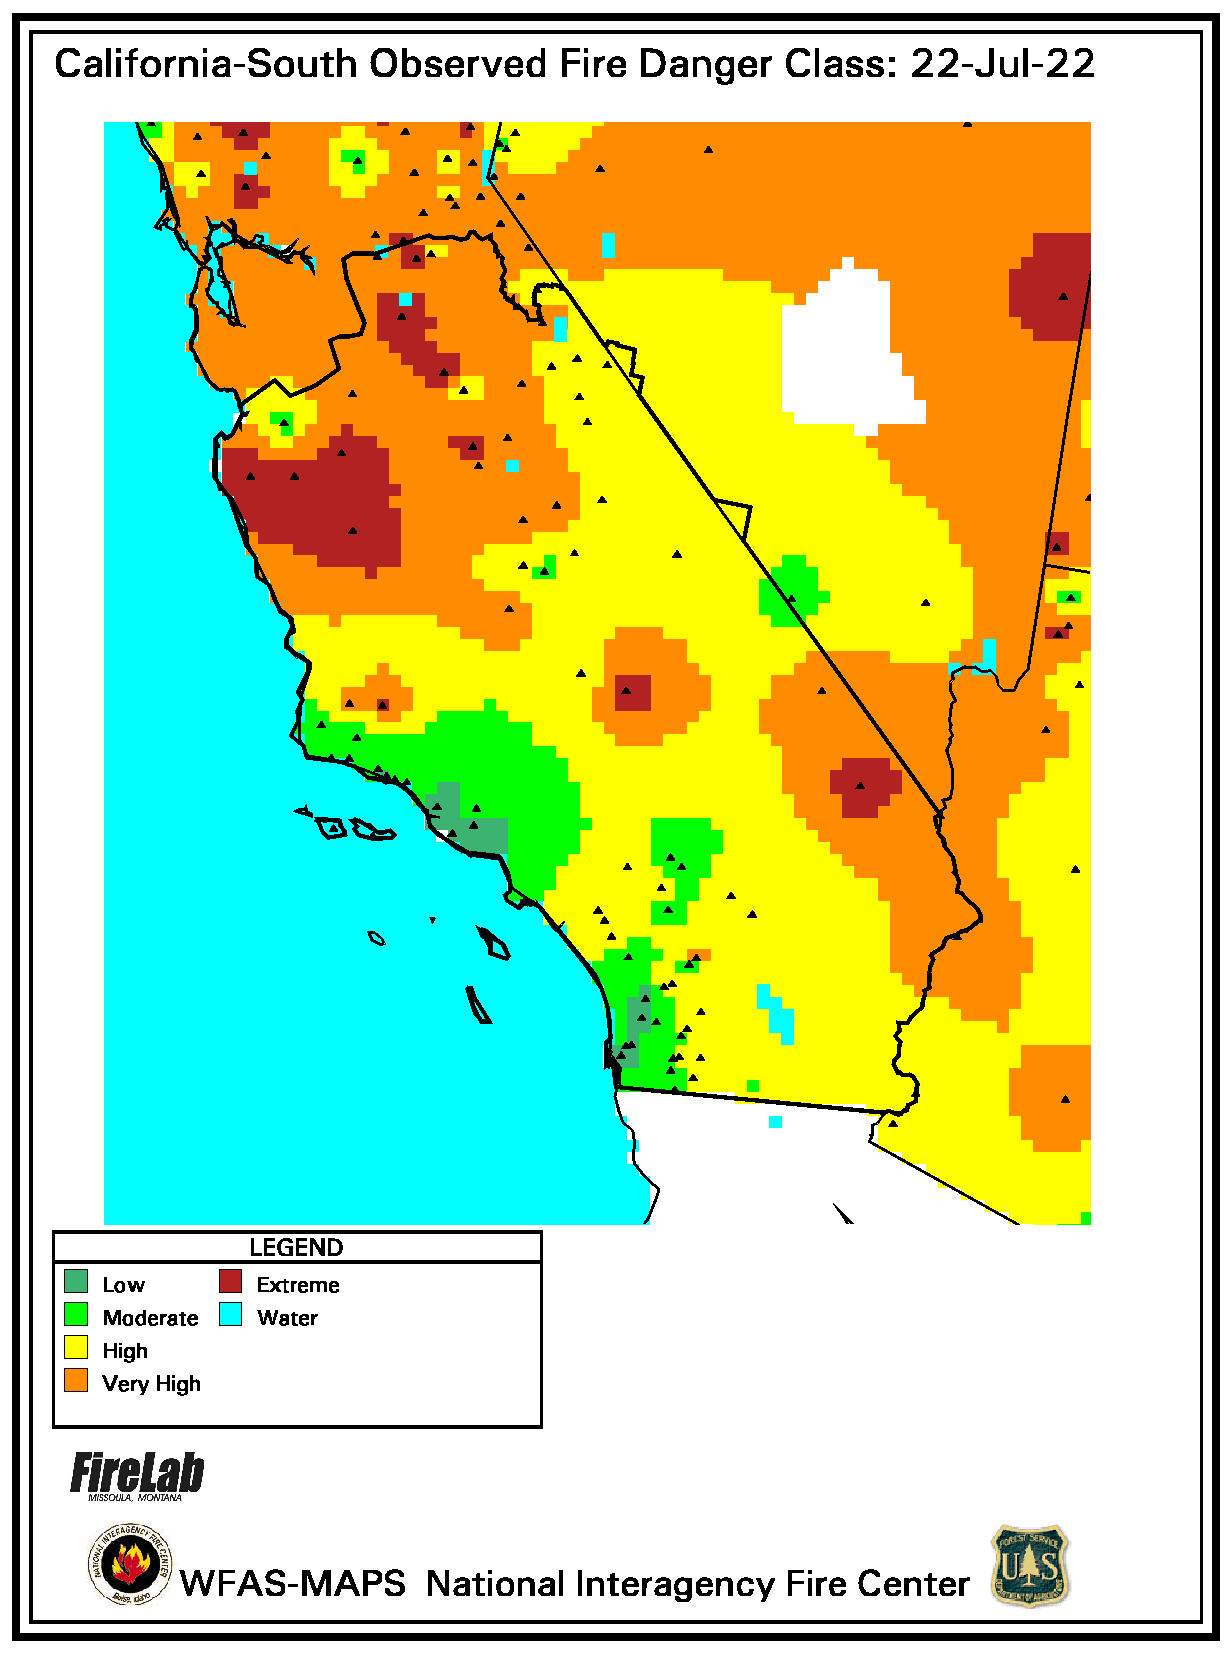 Southern California Observed Fire Danger